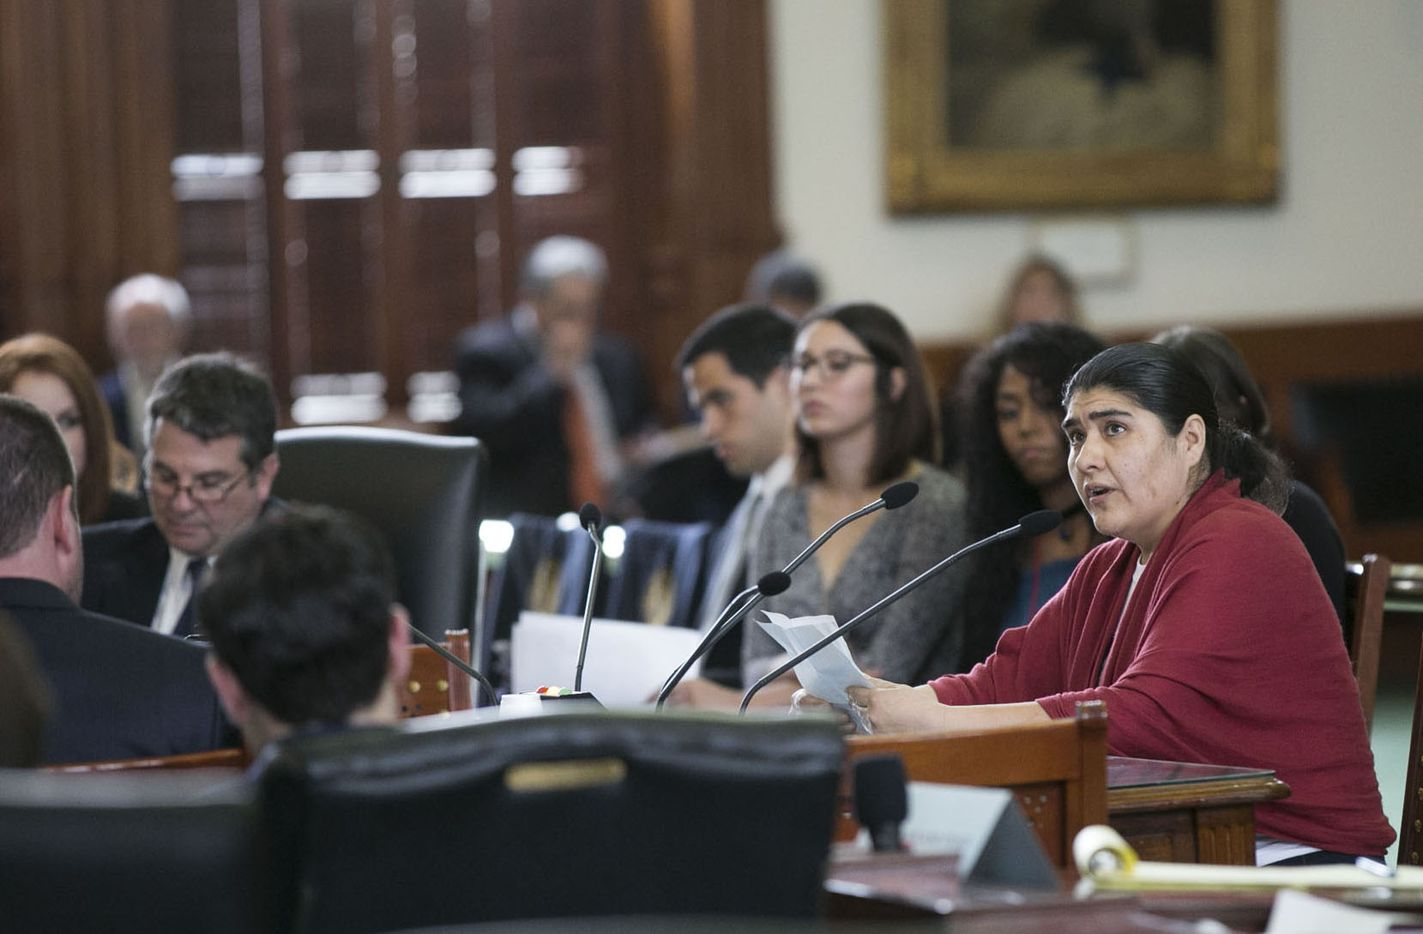 Sylvia Martinez, from Austin, Texas, glances up at the gallery as she speaks about her opposition to SB4 at the Texas Capitol on Thursday, February 2, 2017.